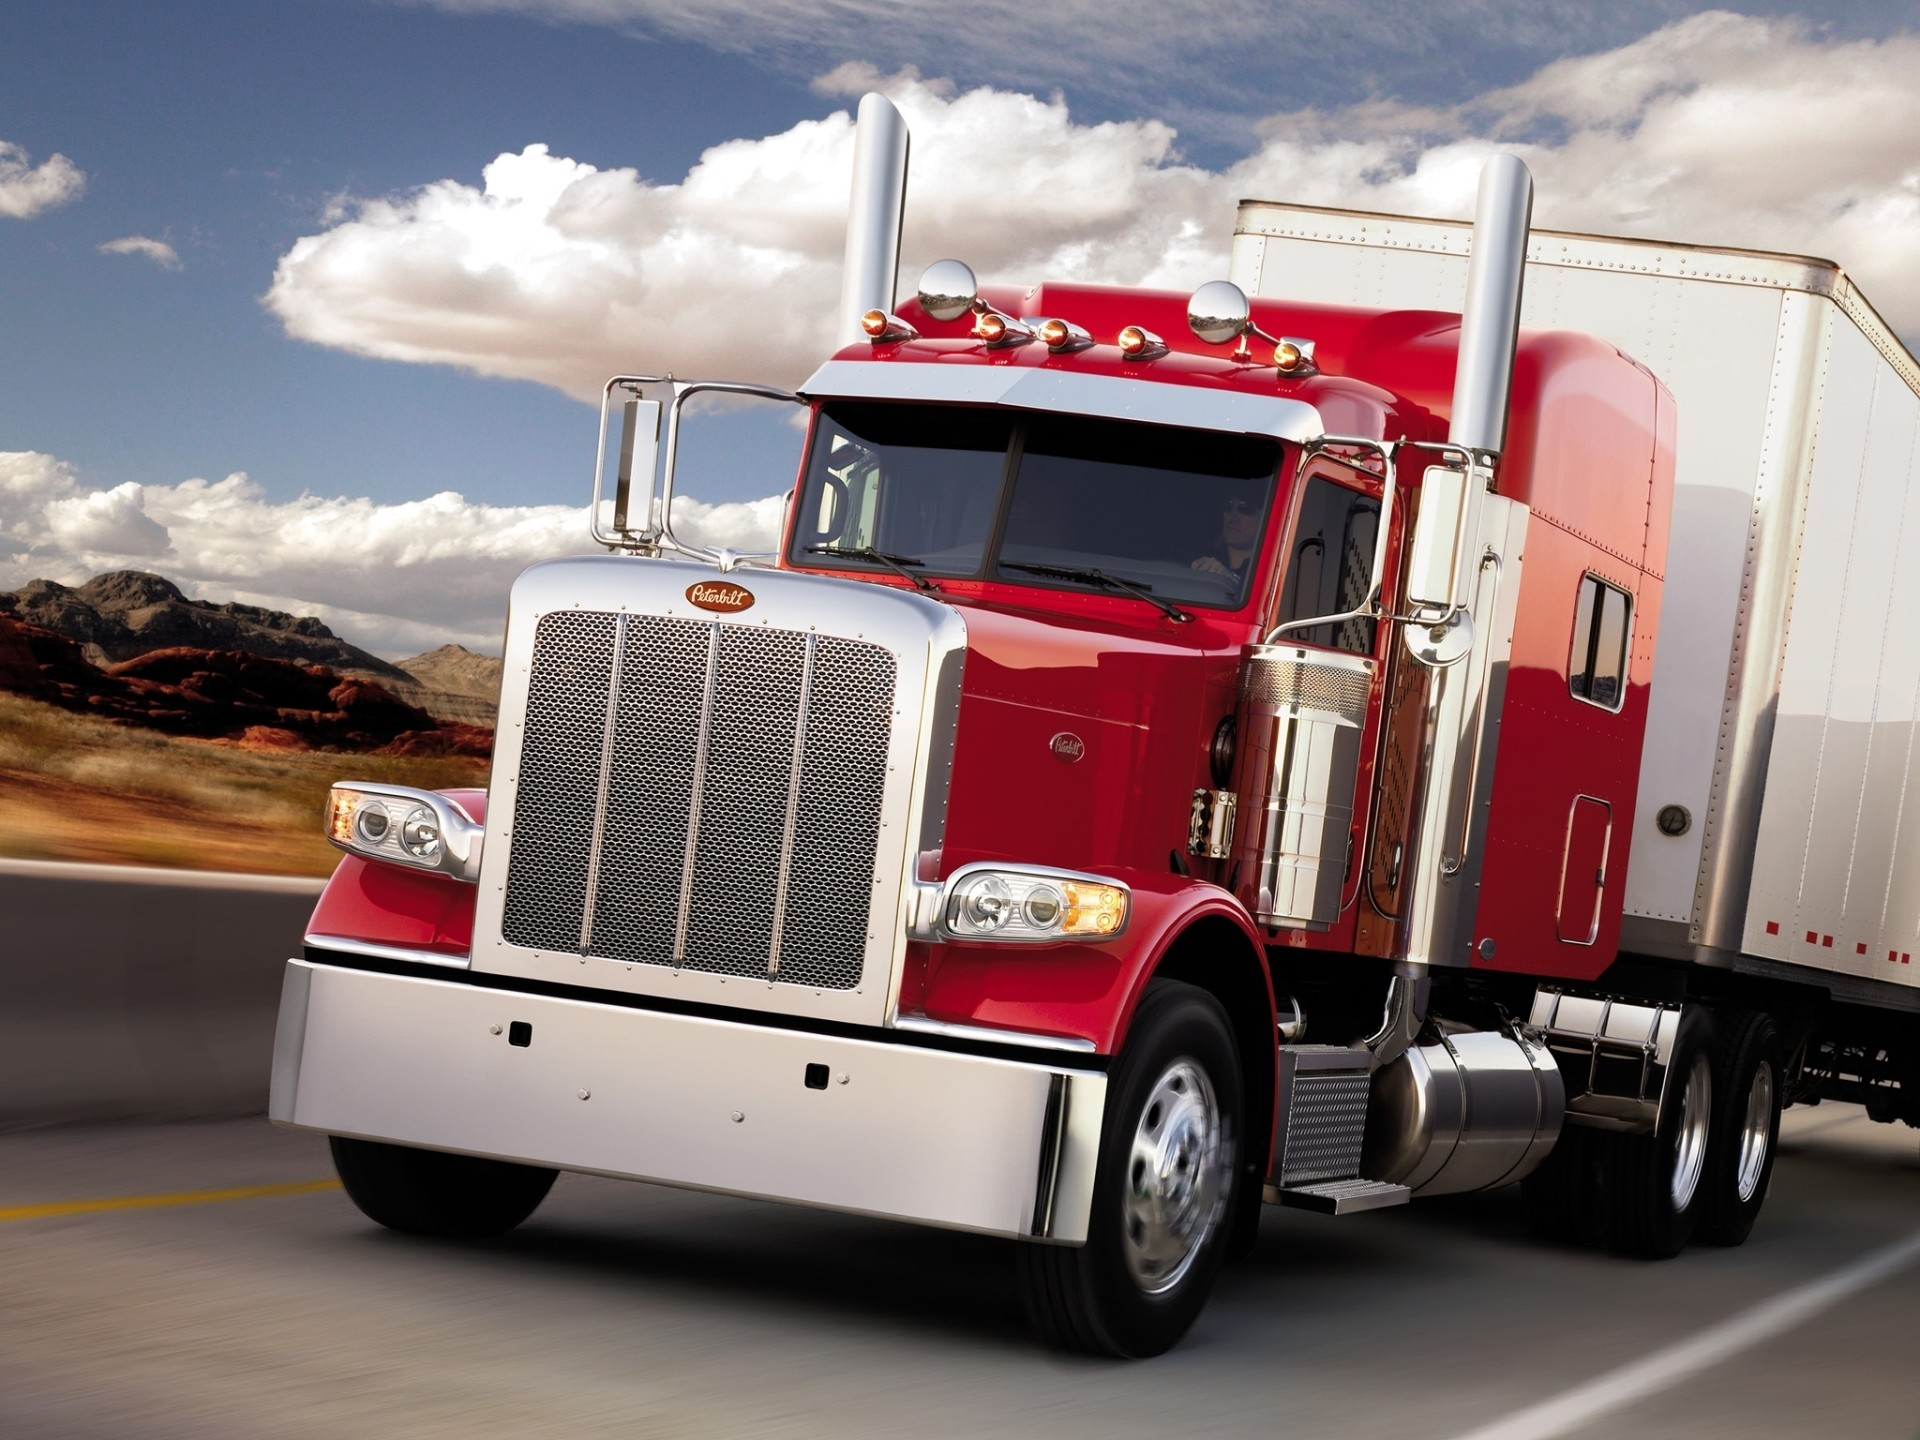 Cool Truck Wallpapers 66 Background Pictures